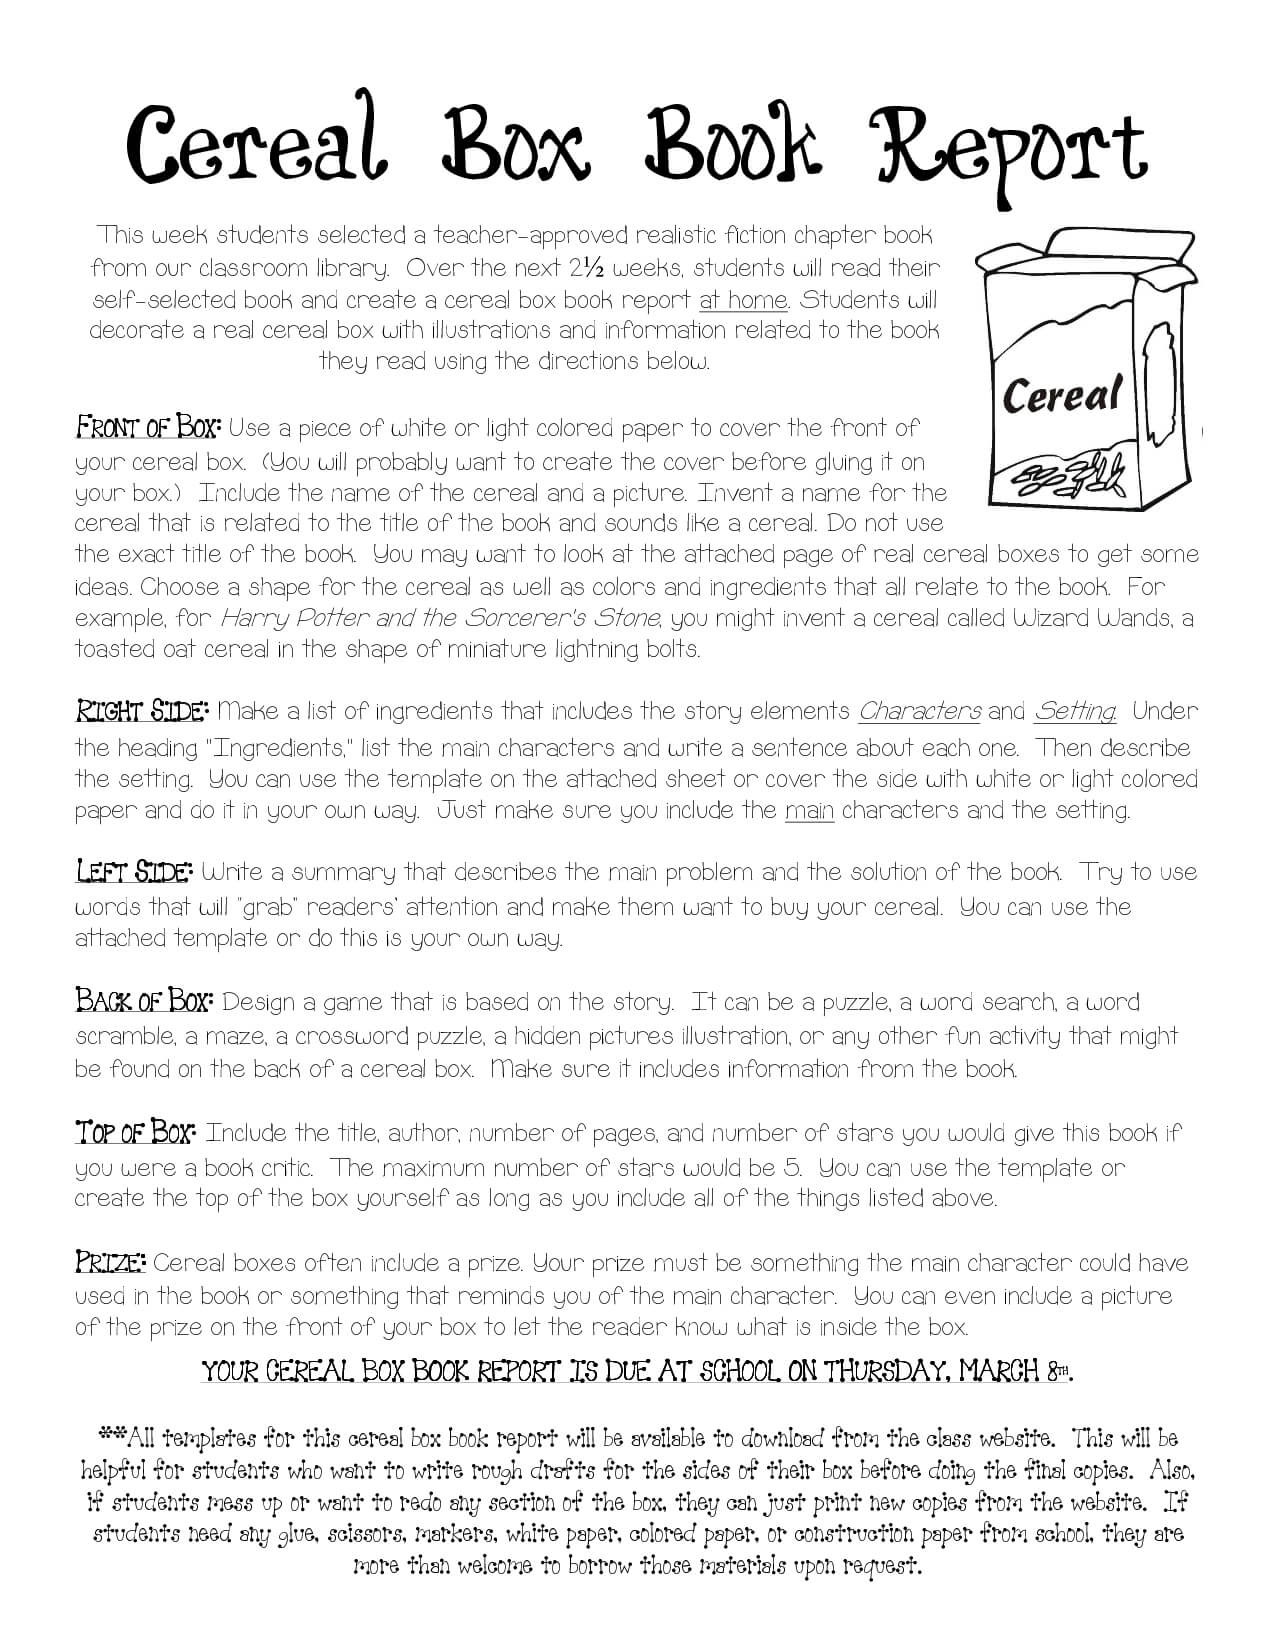 Cereal Box Book Report Instructions   Cereal Box Book Report within Cereal Box Book Report Template